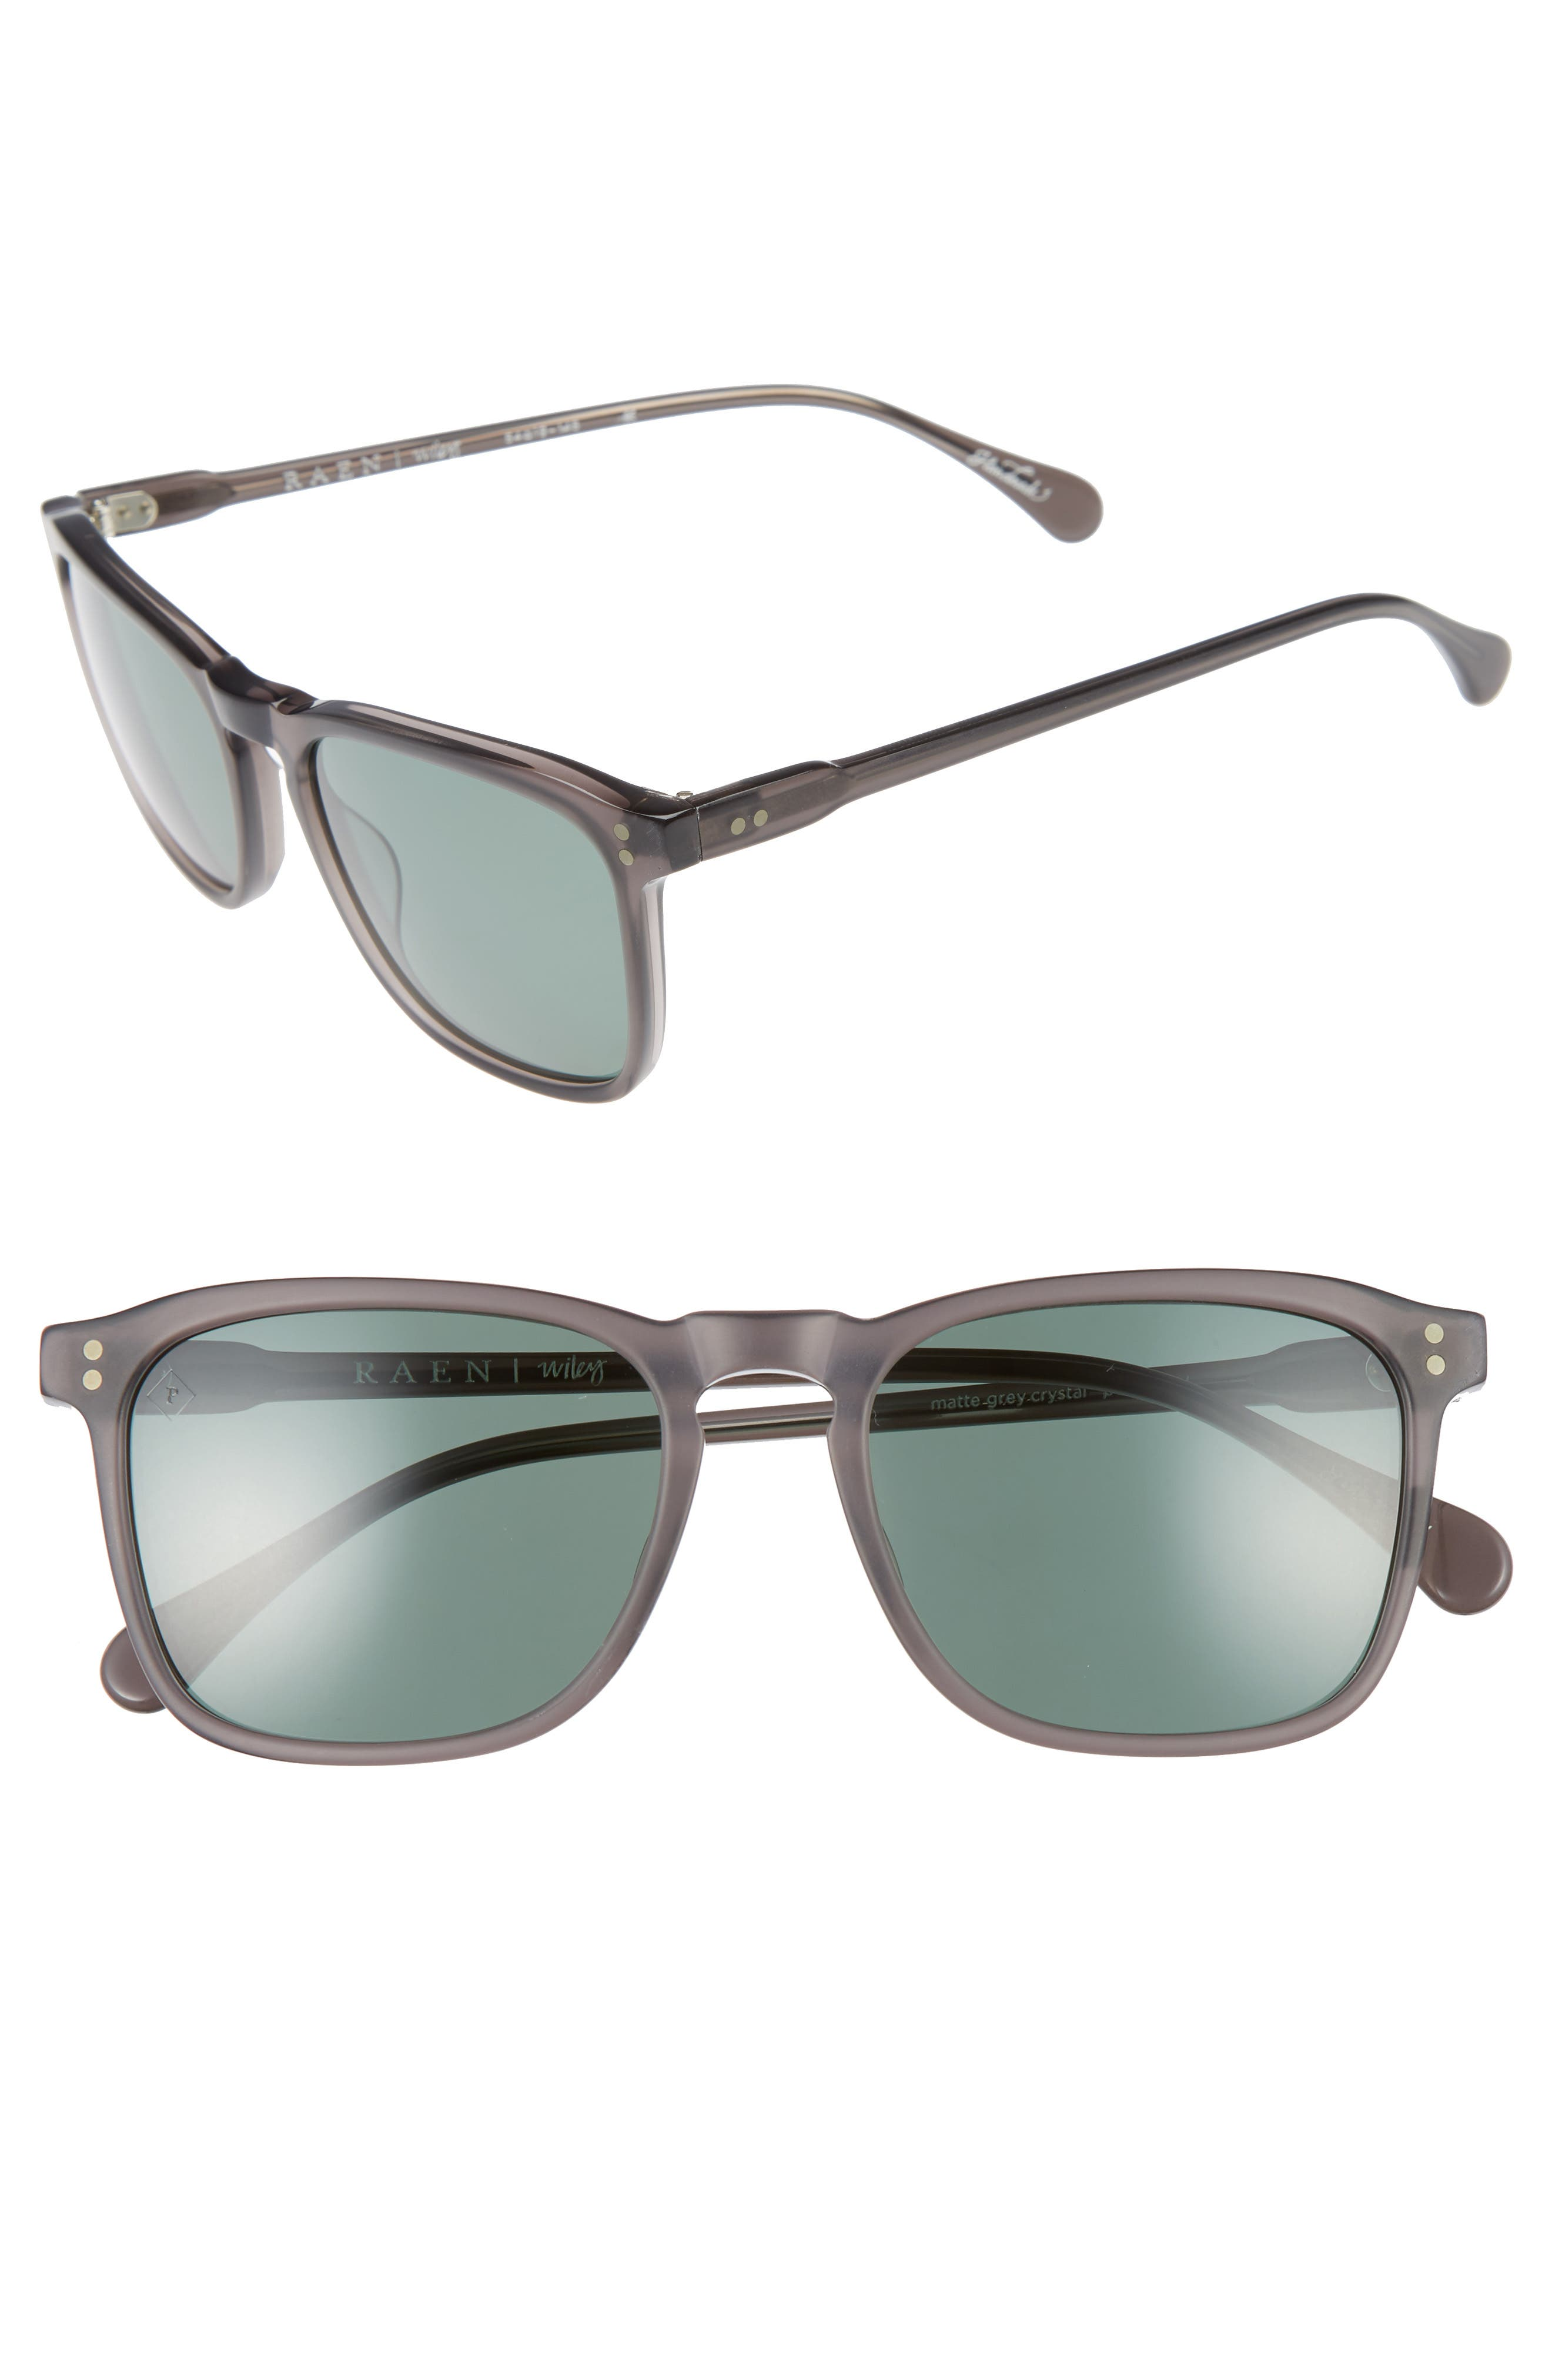 Wiley 54mm Sunglasses,                         Main,                         color, 020